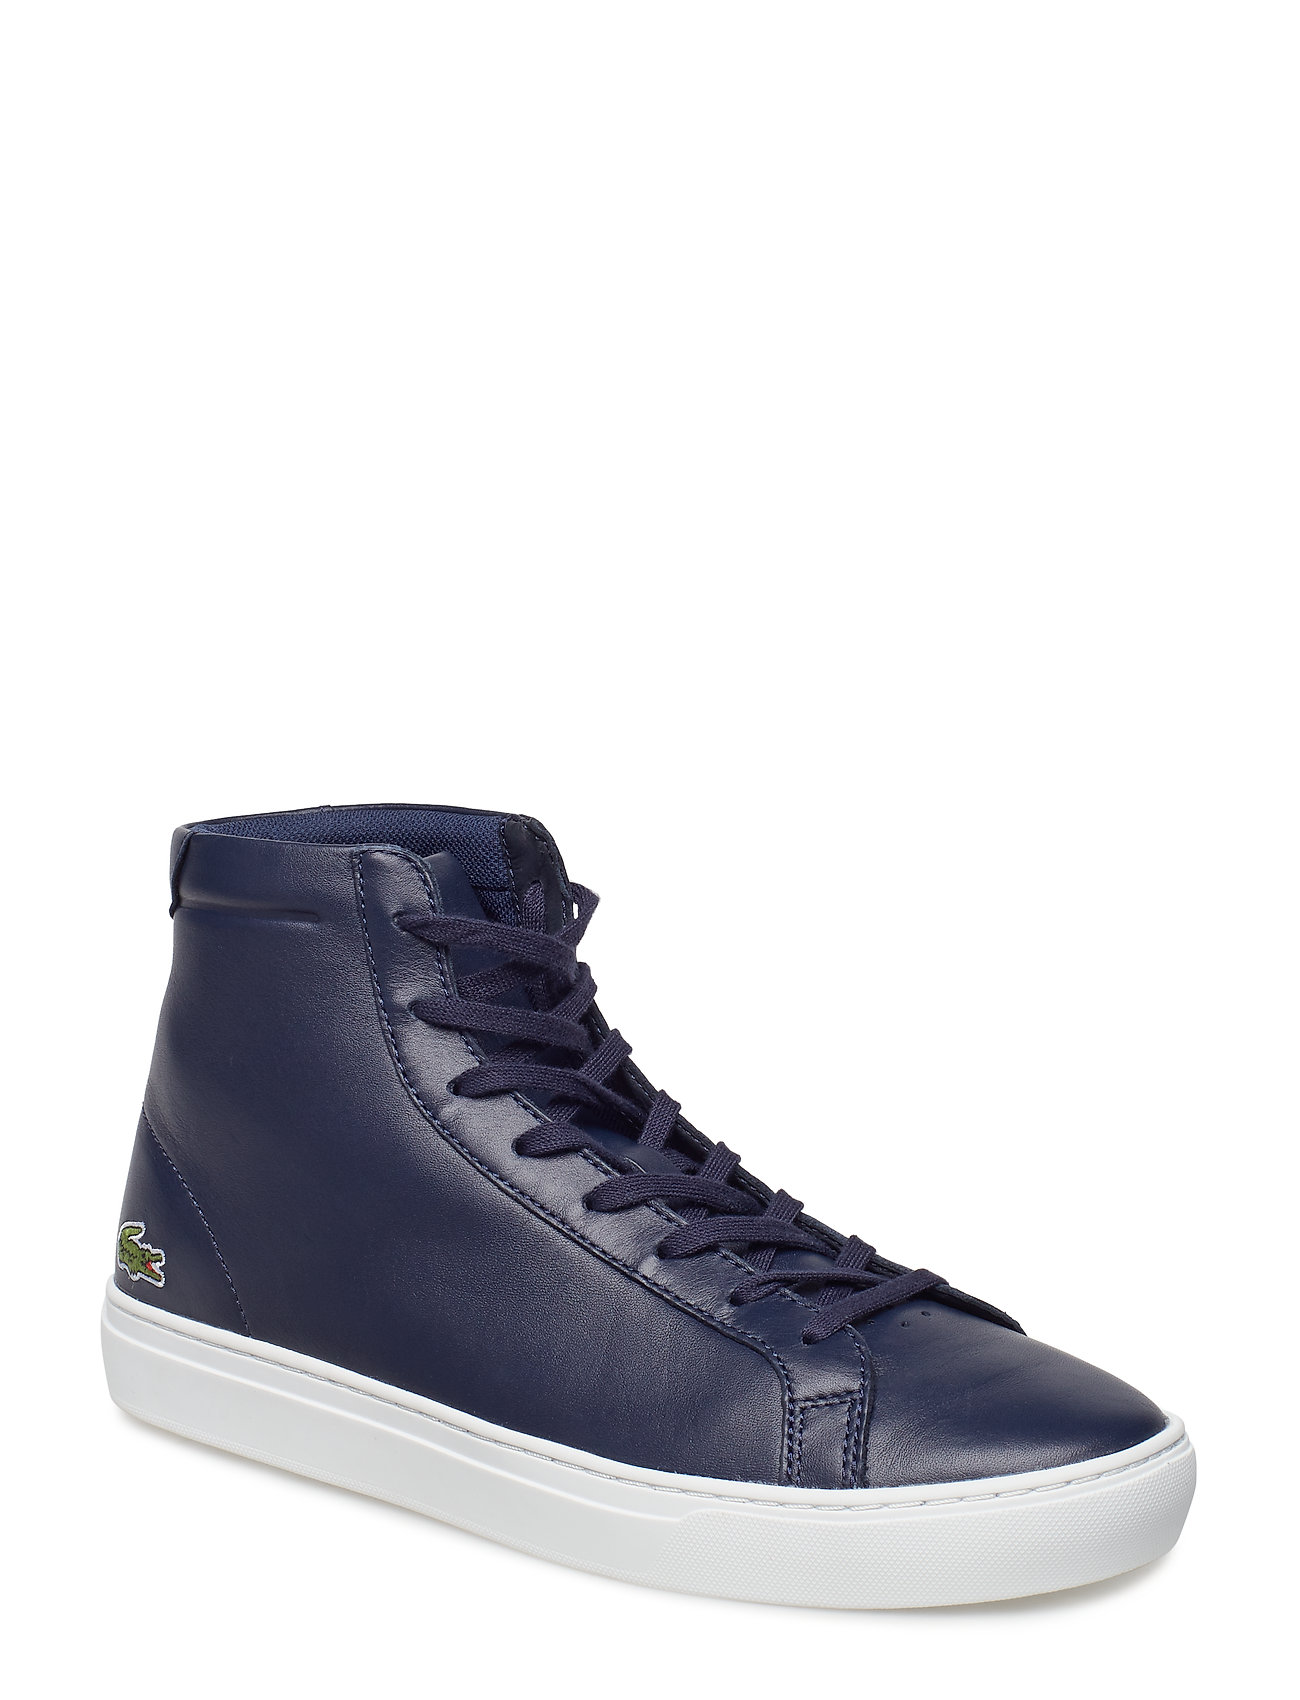 Image of L.12.12 Mid 316 1 High-top Sneakers Blå LACOSTE SHOES (3095670543)